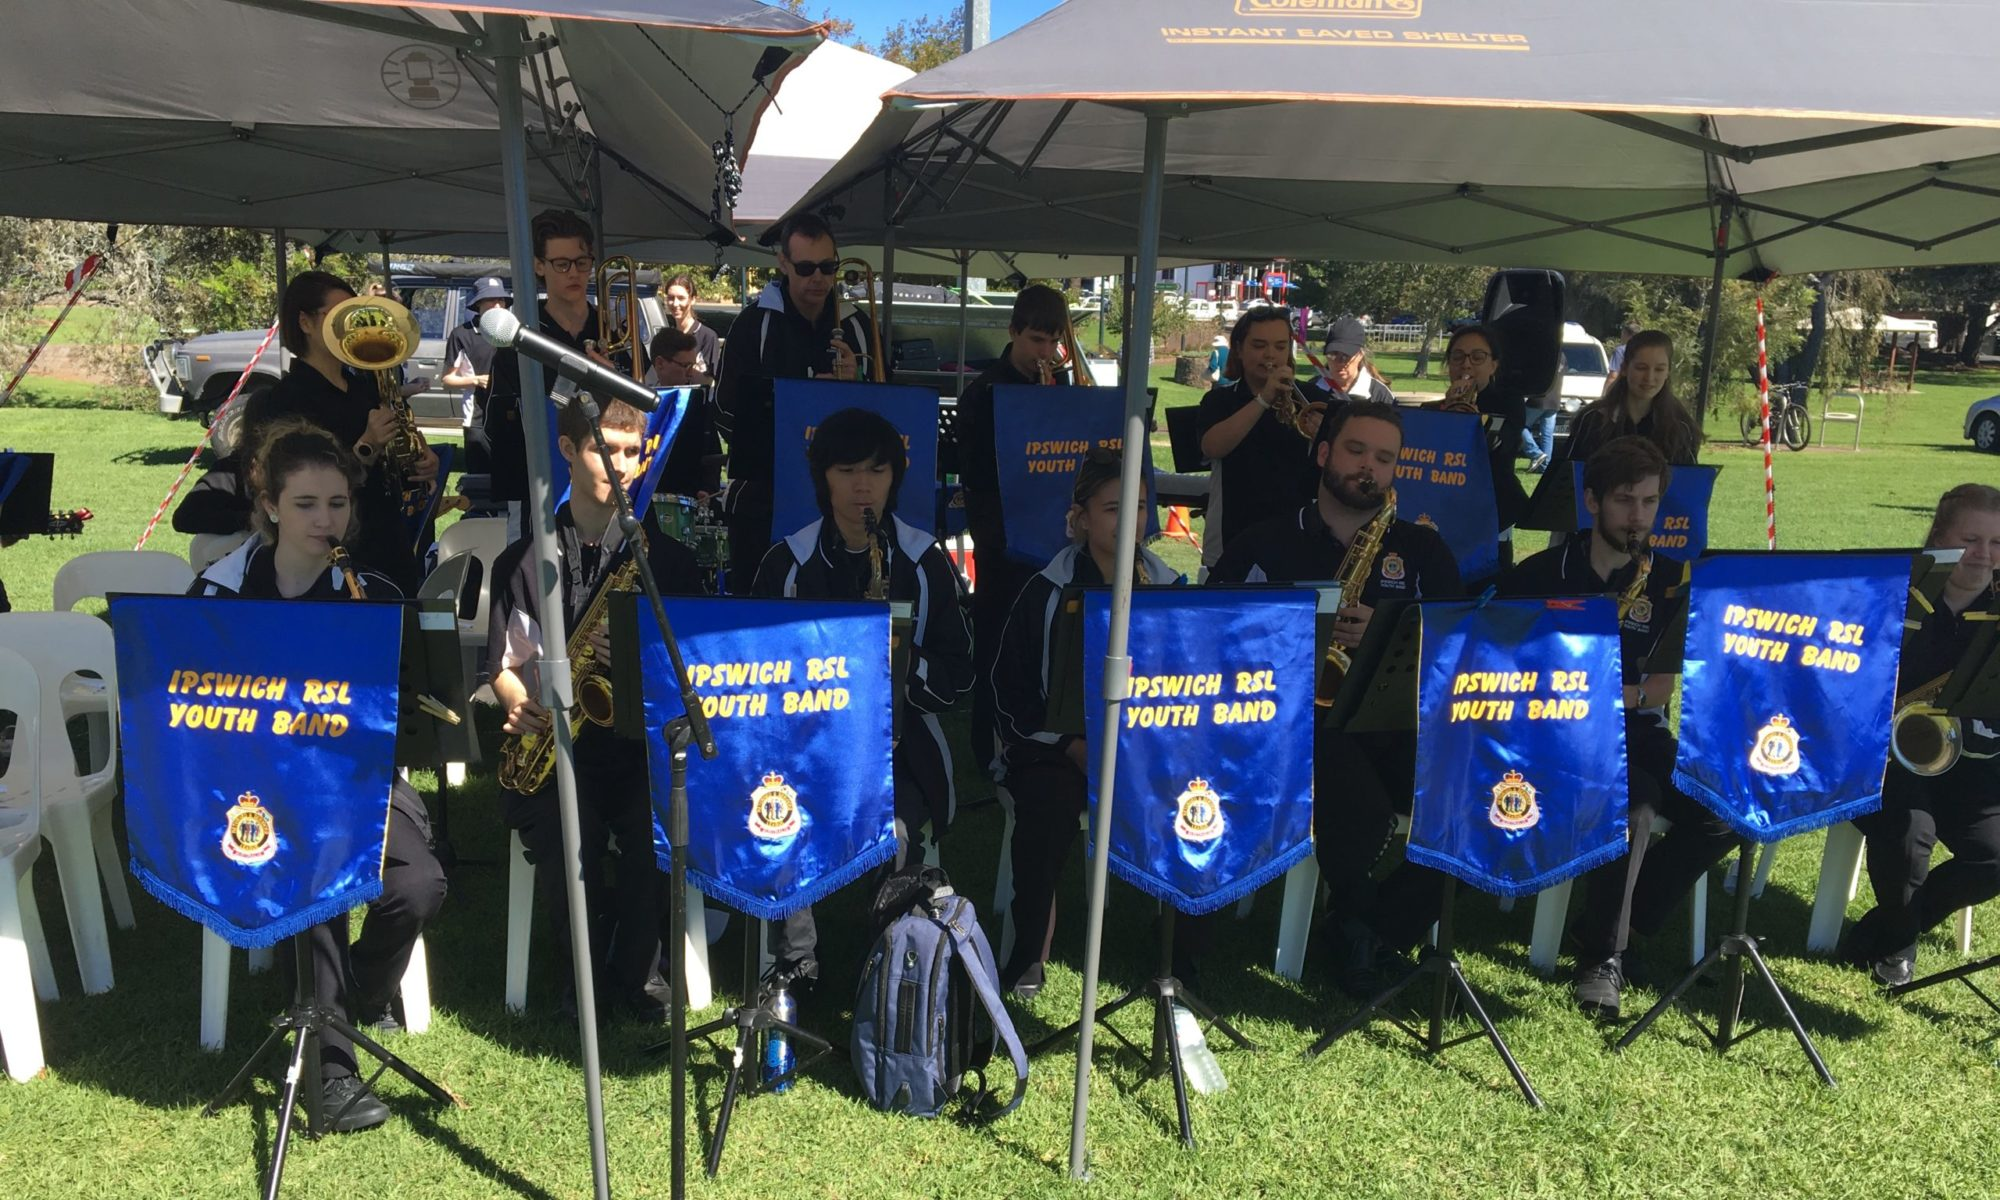 Ipswich RSL Youth and Community Band